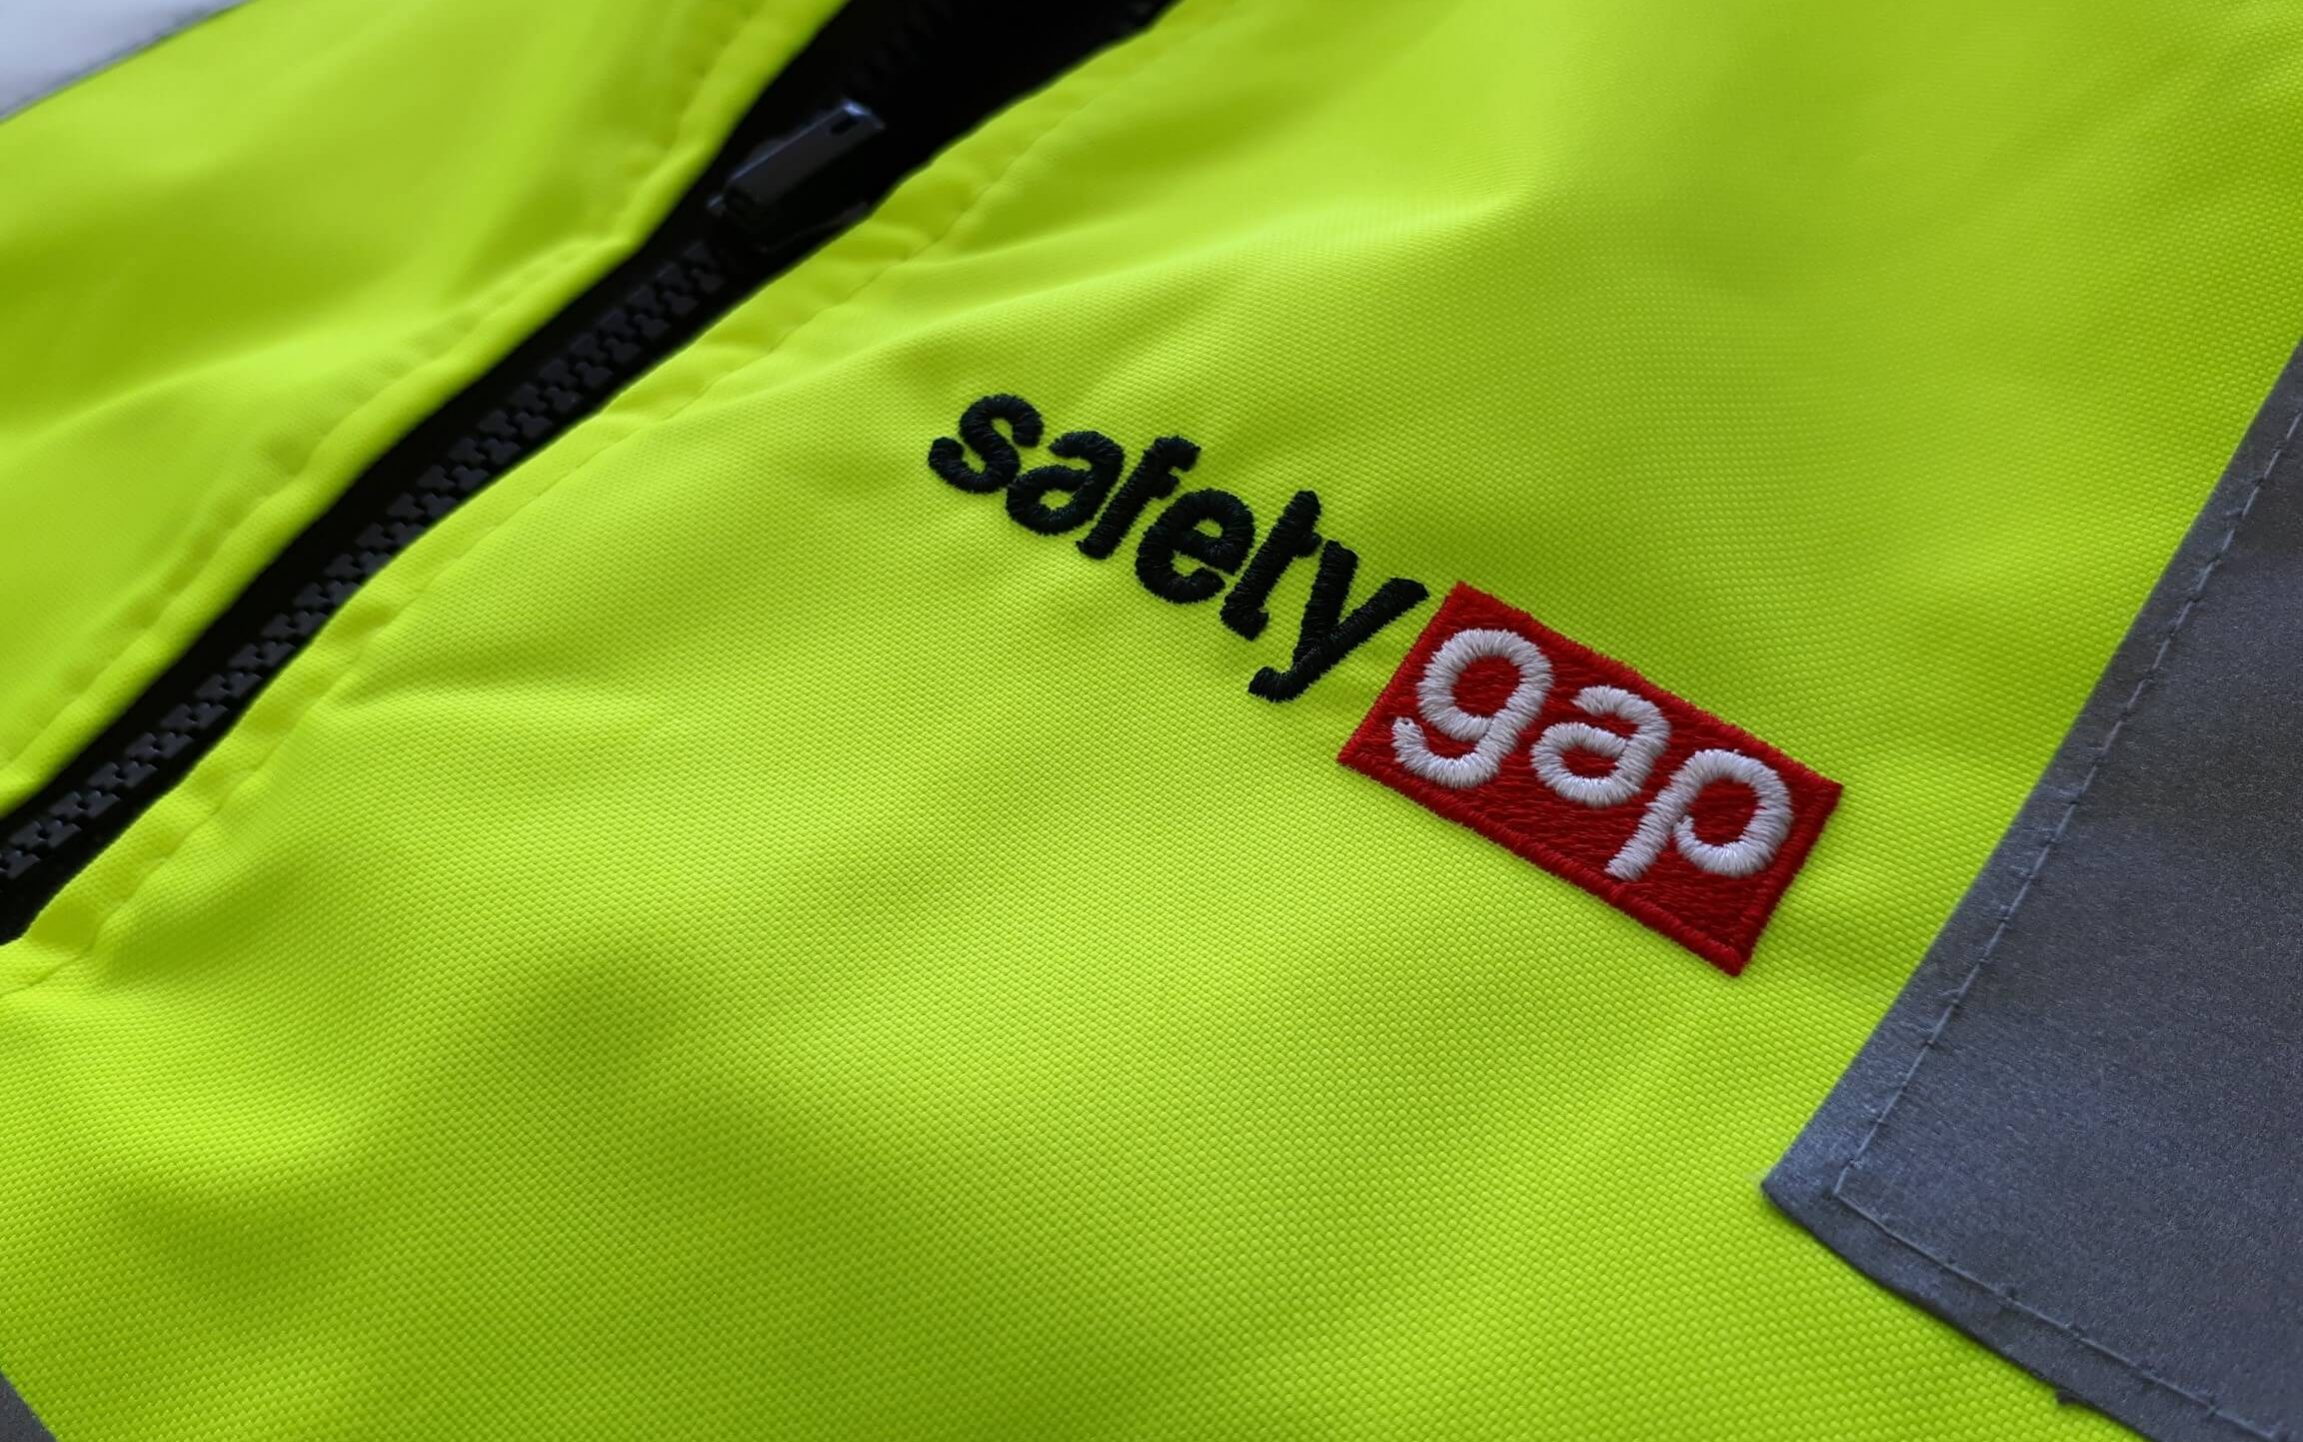 Safetygap - Mission - Background